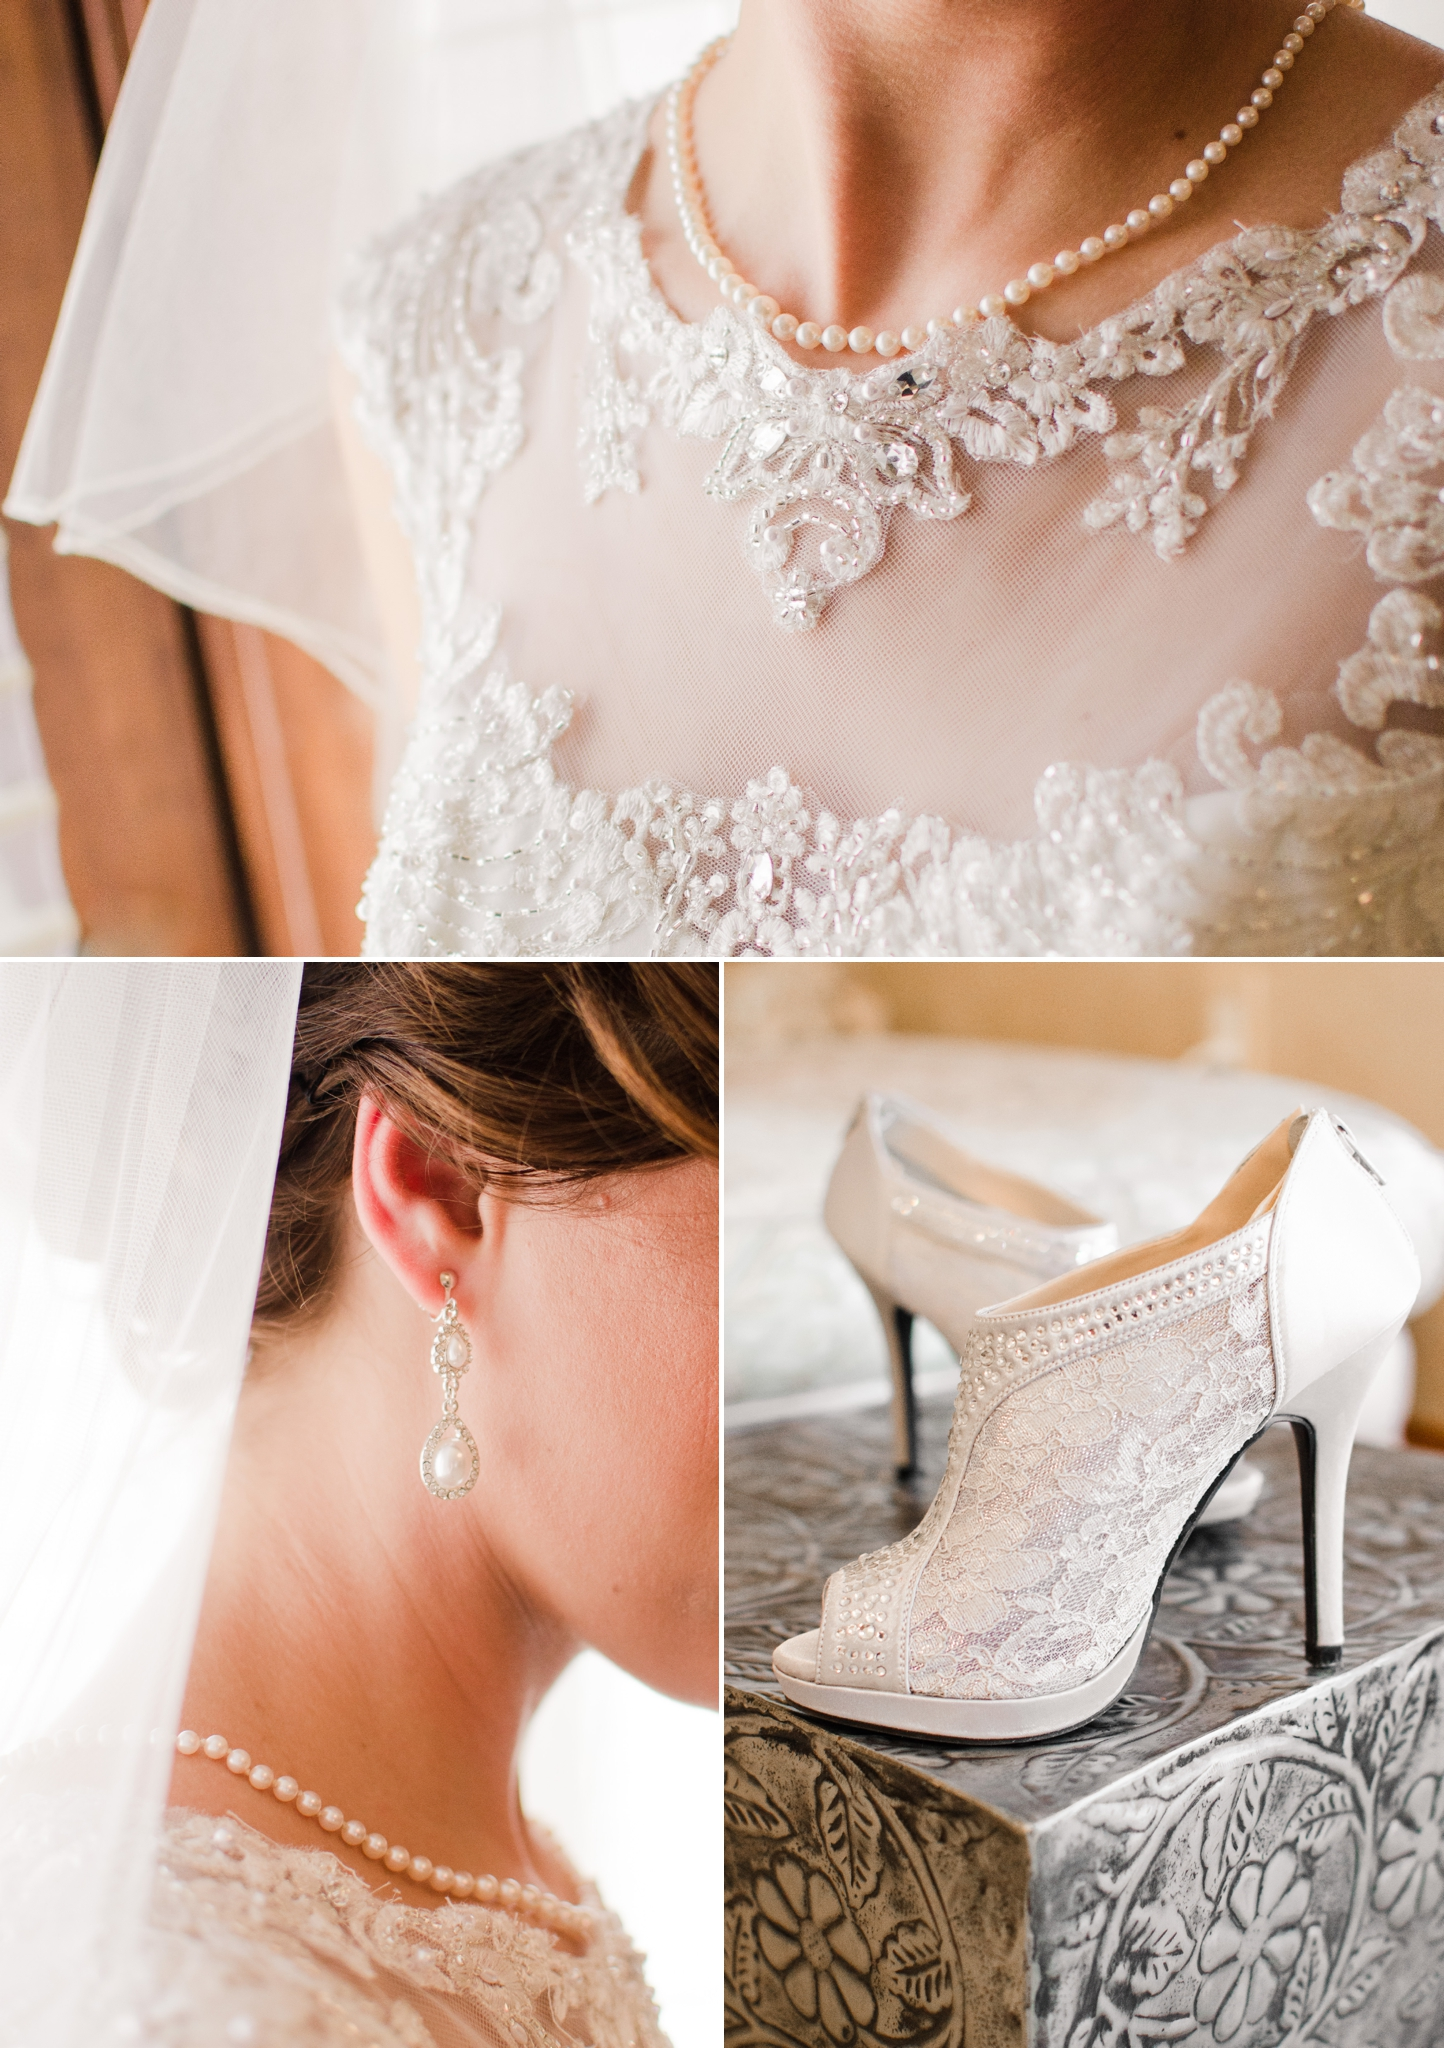 cielo at castle pines bride getting ready. shoes, veil, earrings and lace wedding dress.